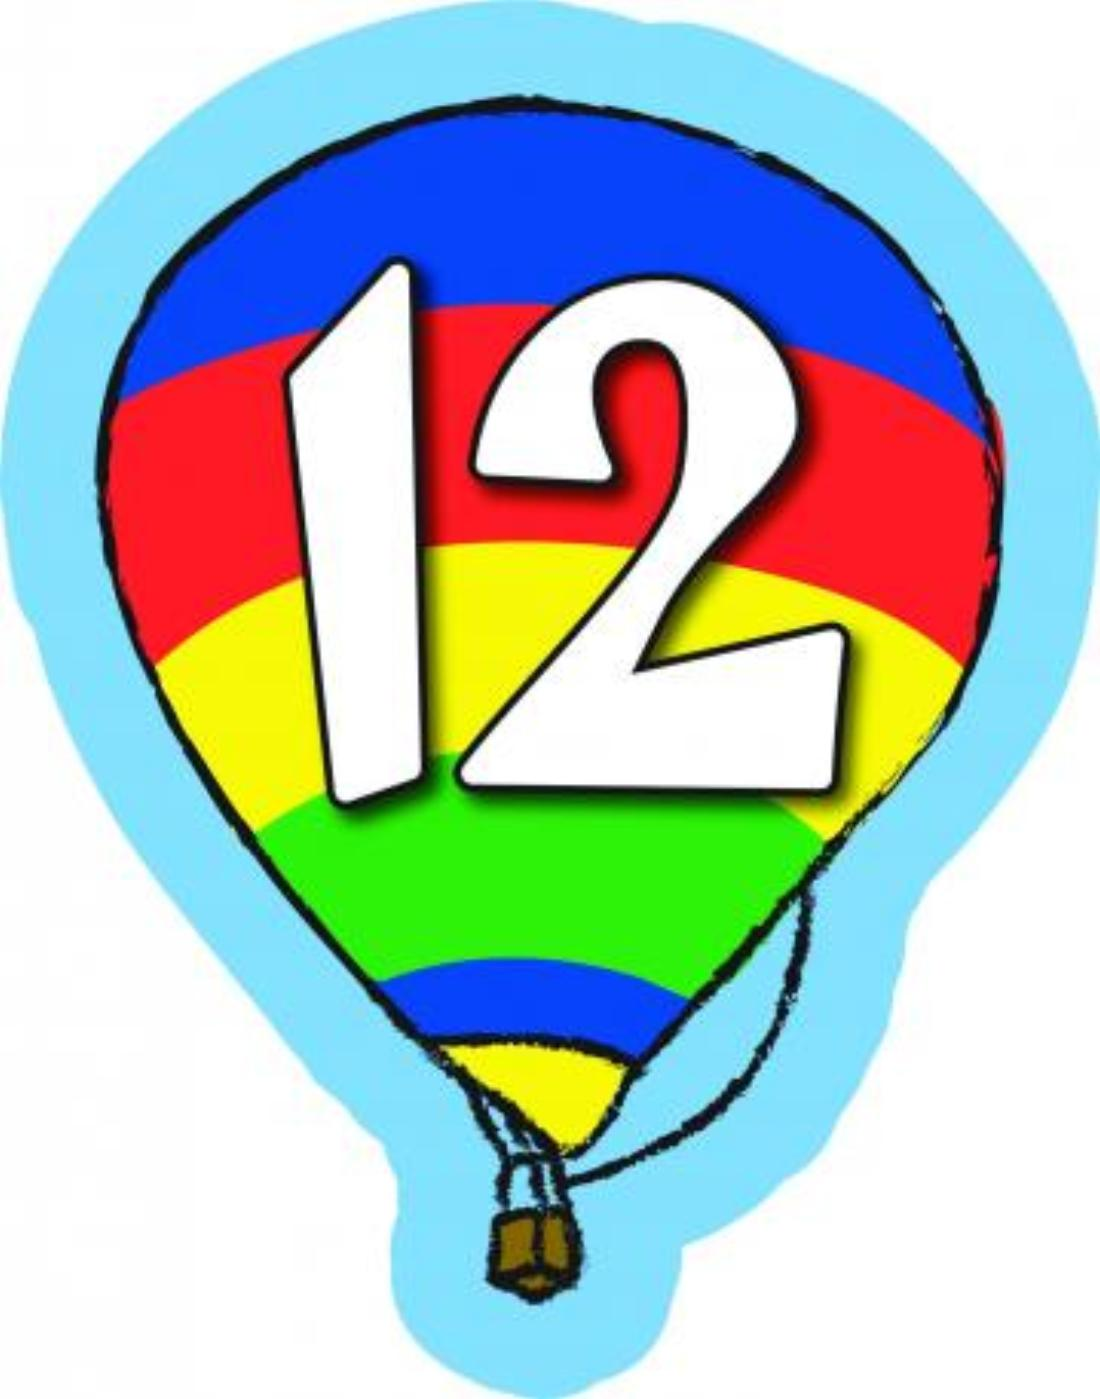 Number 12 Clipart At GetDrawings.com